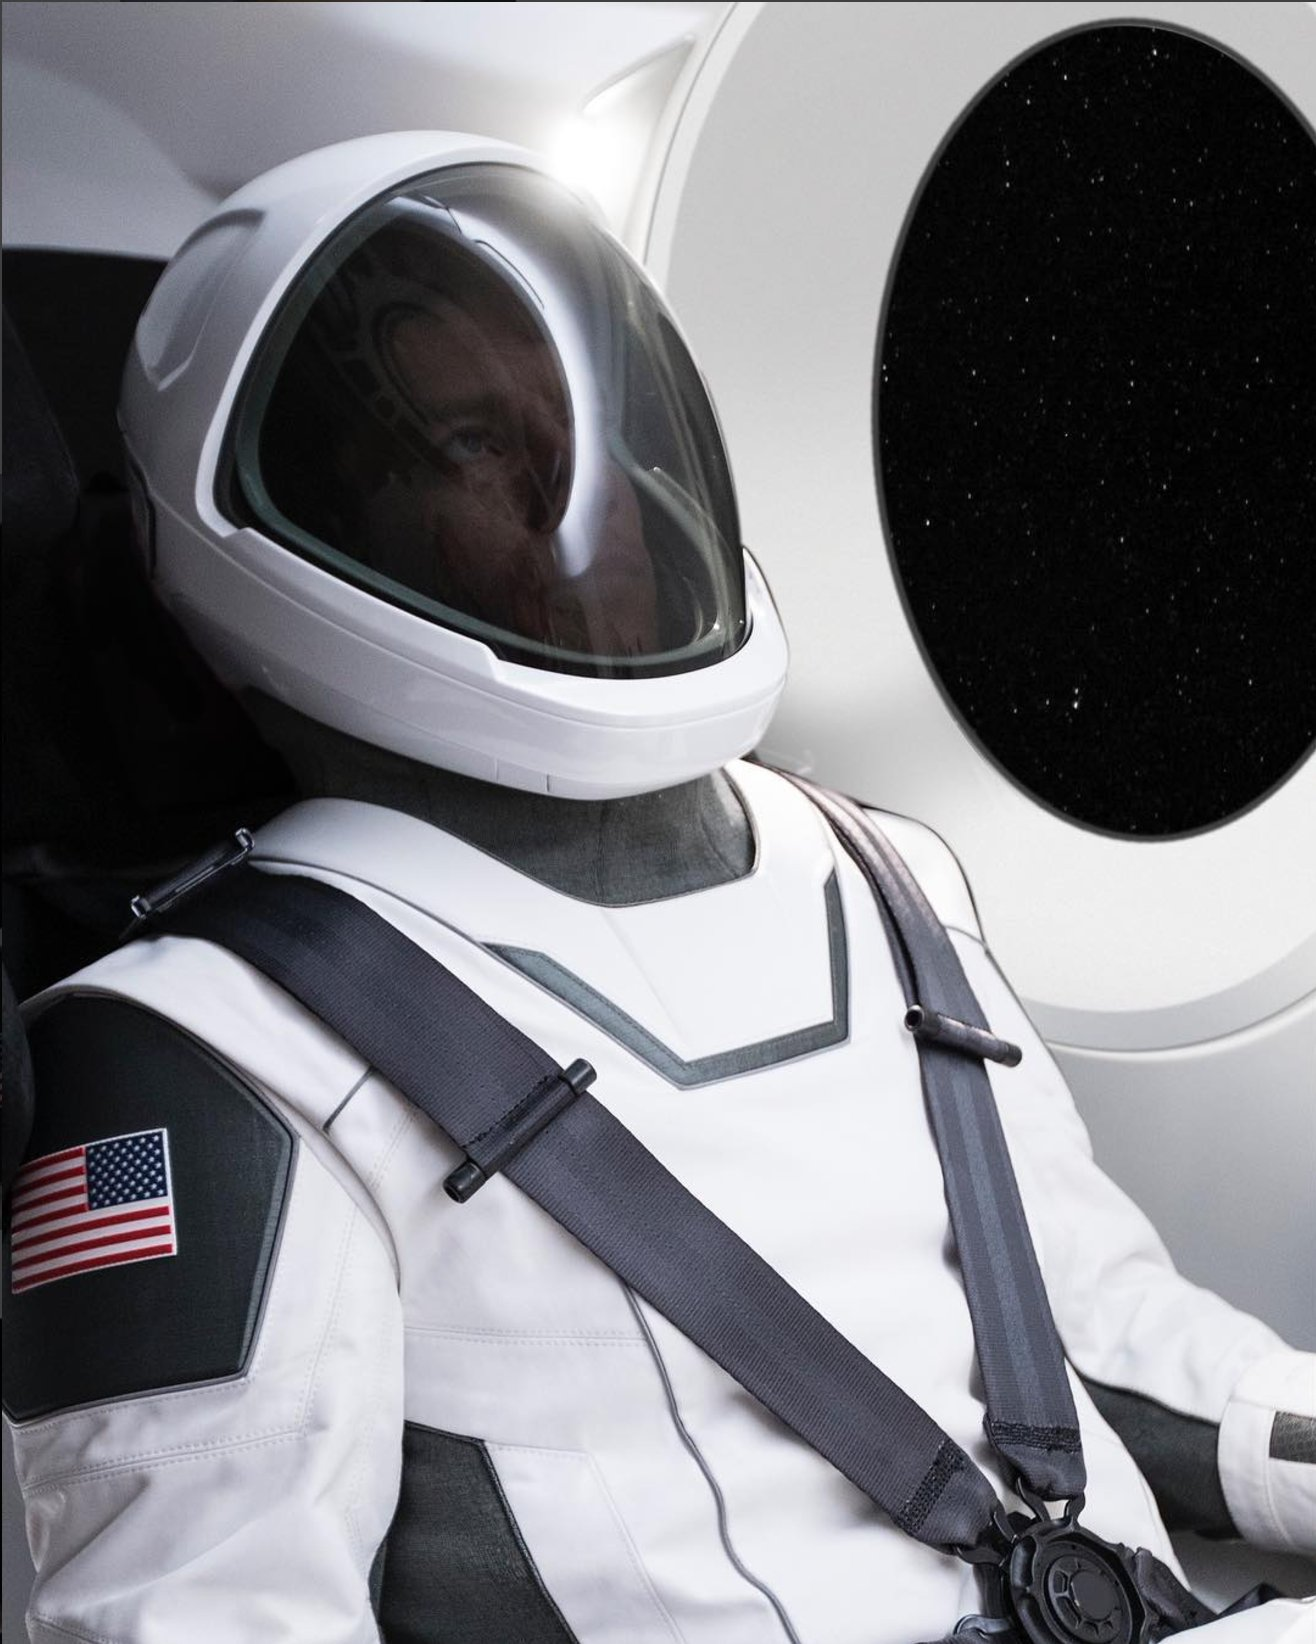 Elon Musk shares first photo of SpaceX's new spacesuit https://t.co/f1dGZVatOT by @etherington https://t.co/p4UC0DTV7q